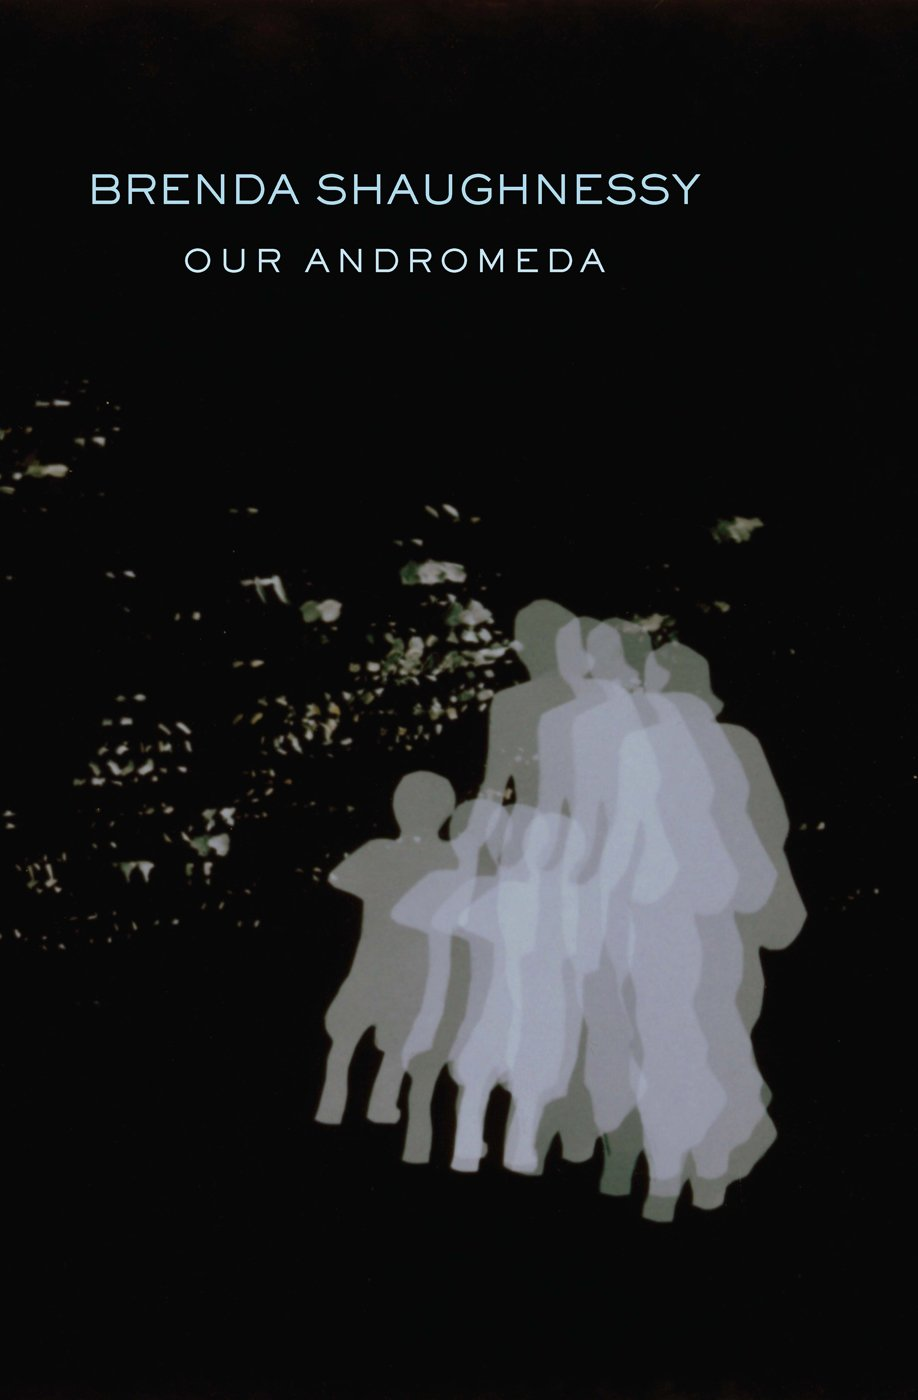 Brenda Shaughnessy's Our Andromeda